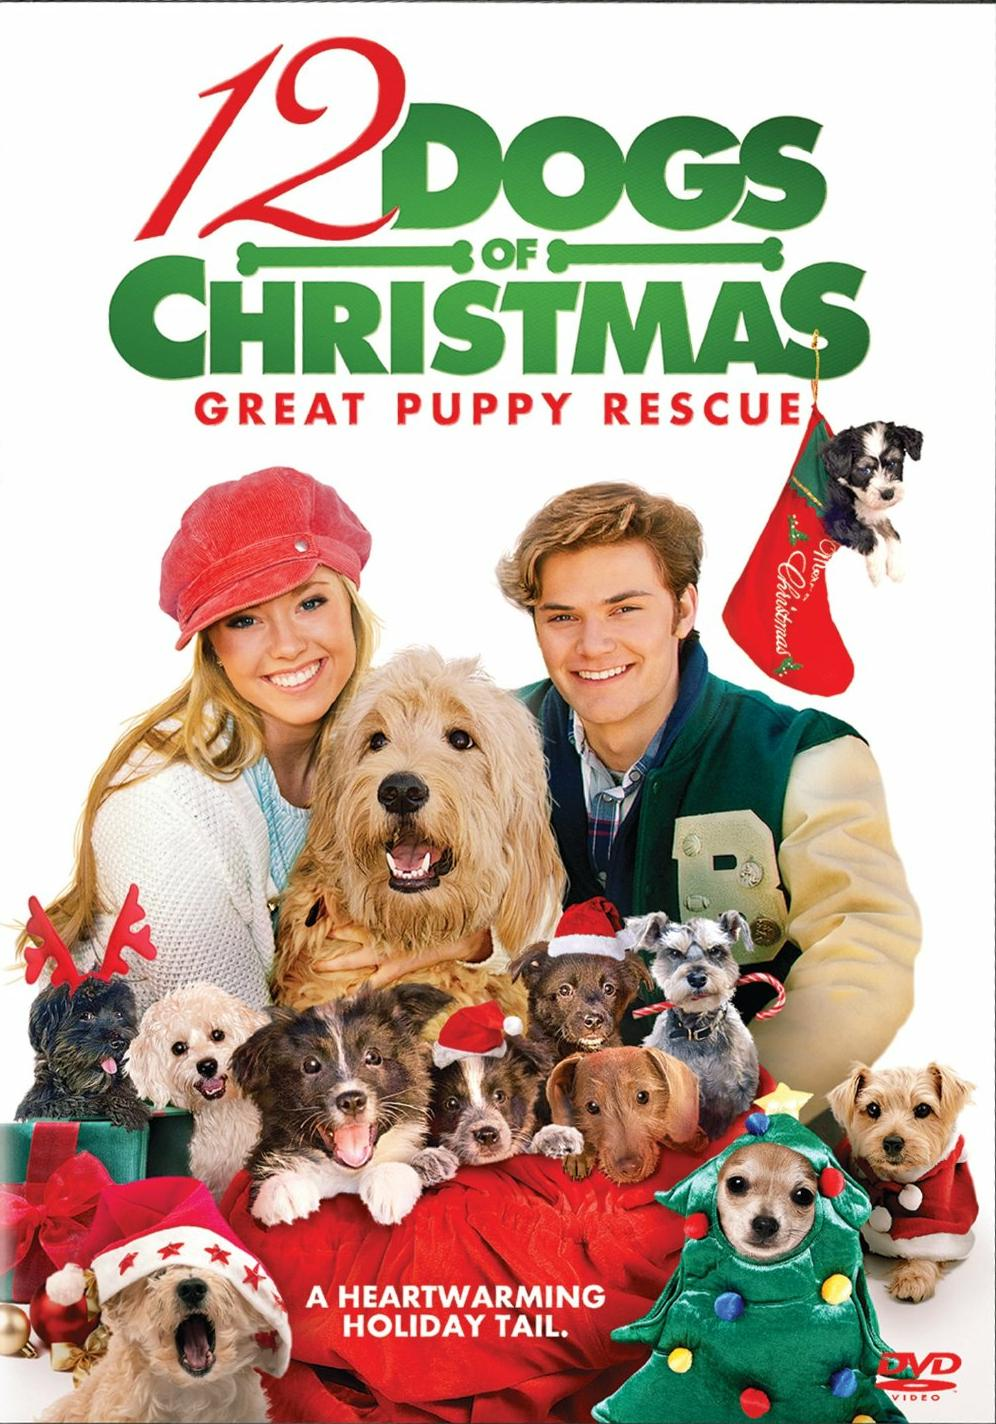 12 Dogs of Christmas: Great Puppy Rescue (2012) Online